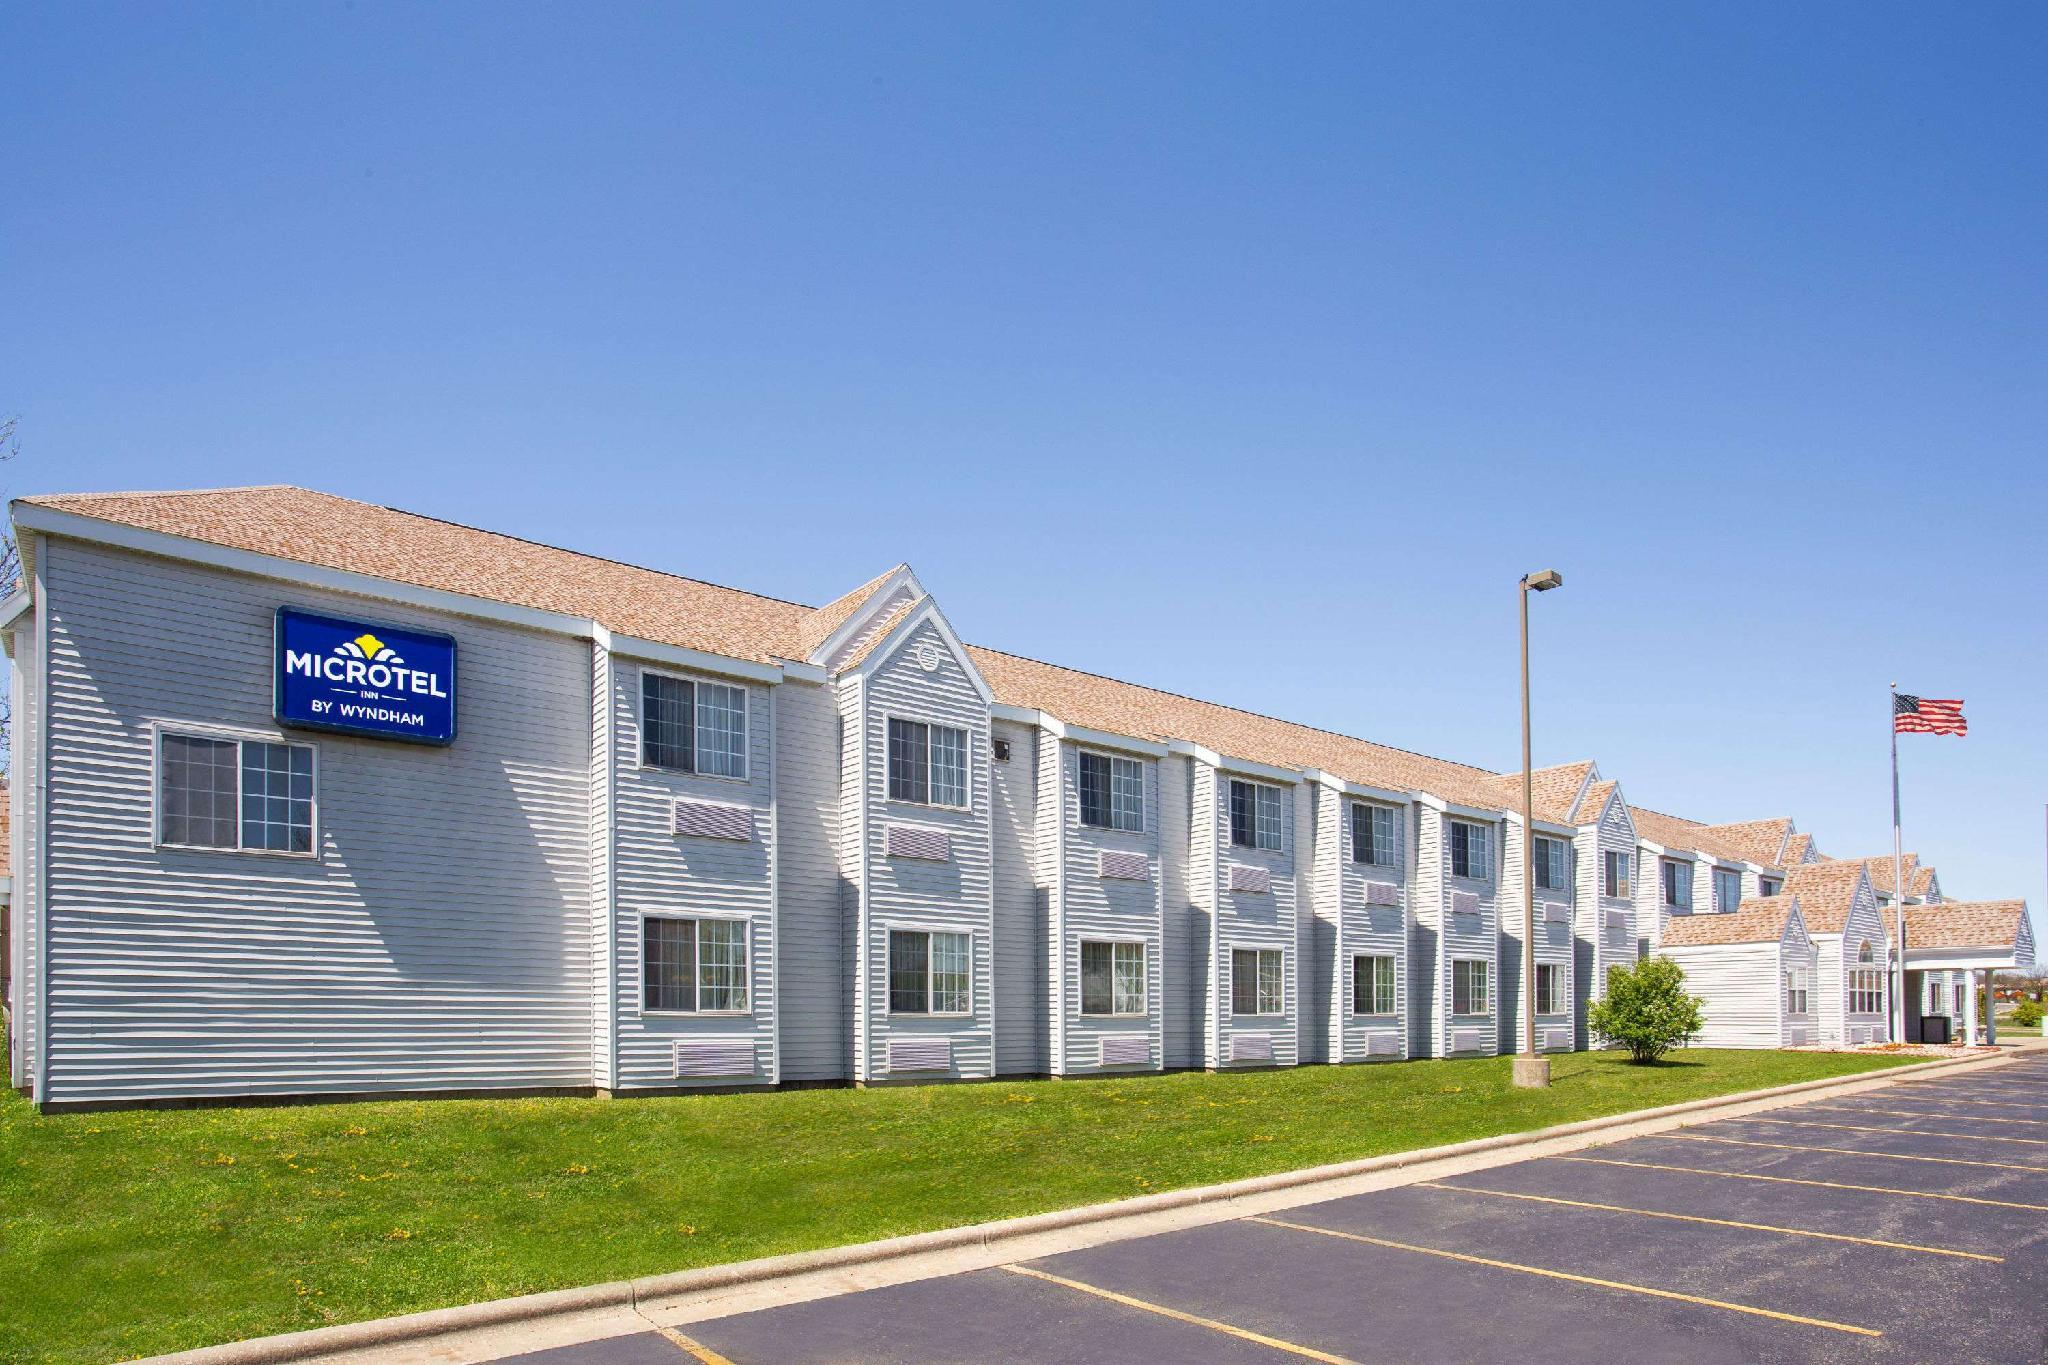 Microtel Inn And Suites By Wyndham Janesville